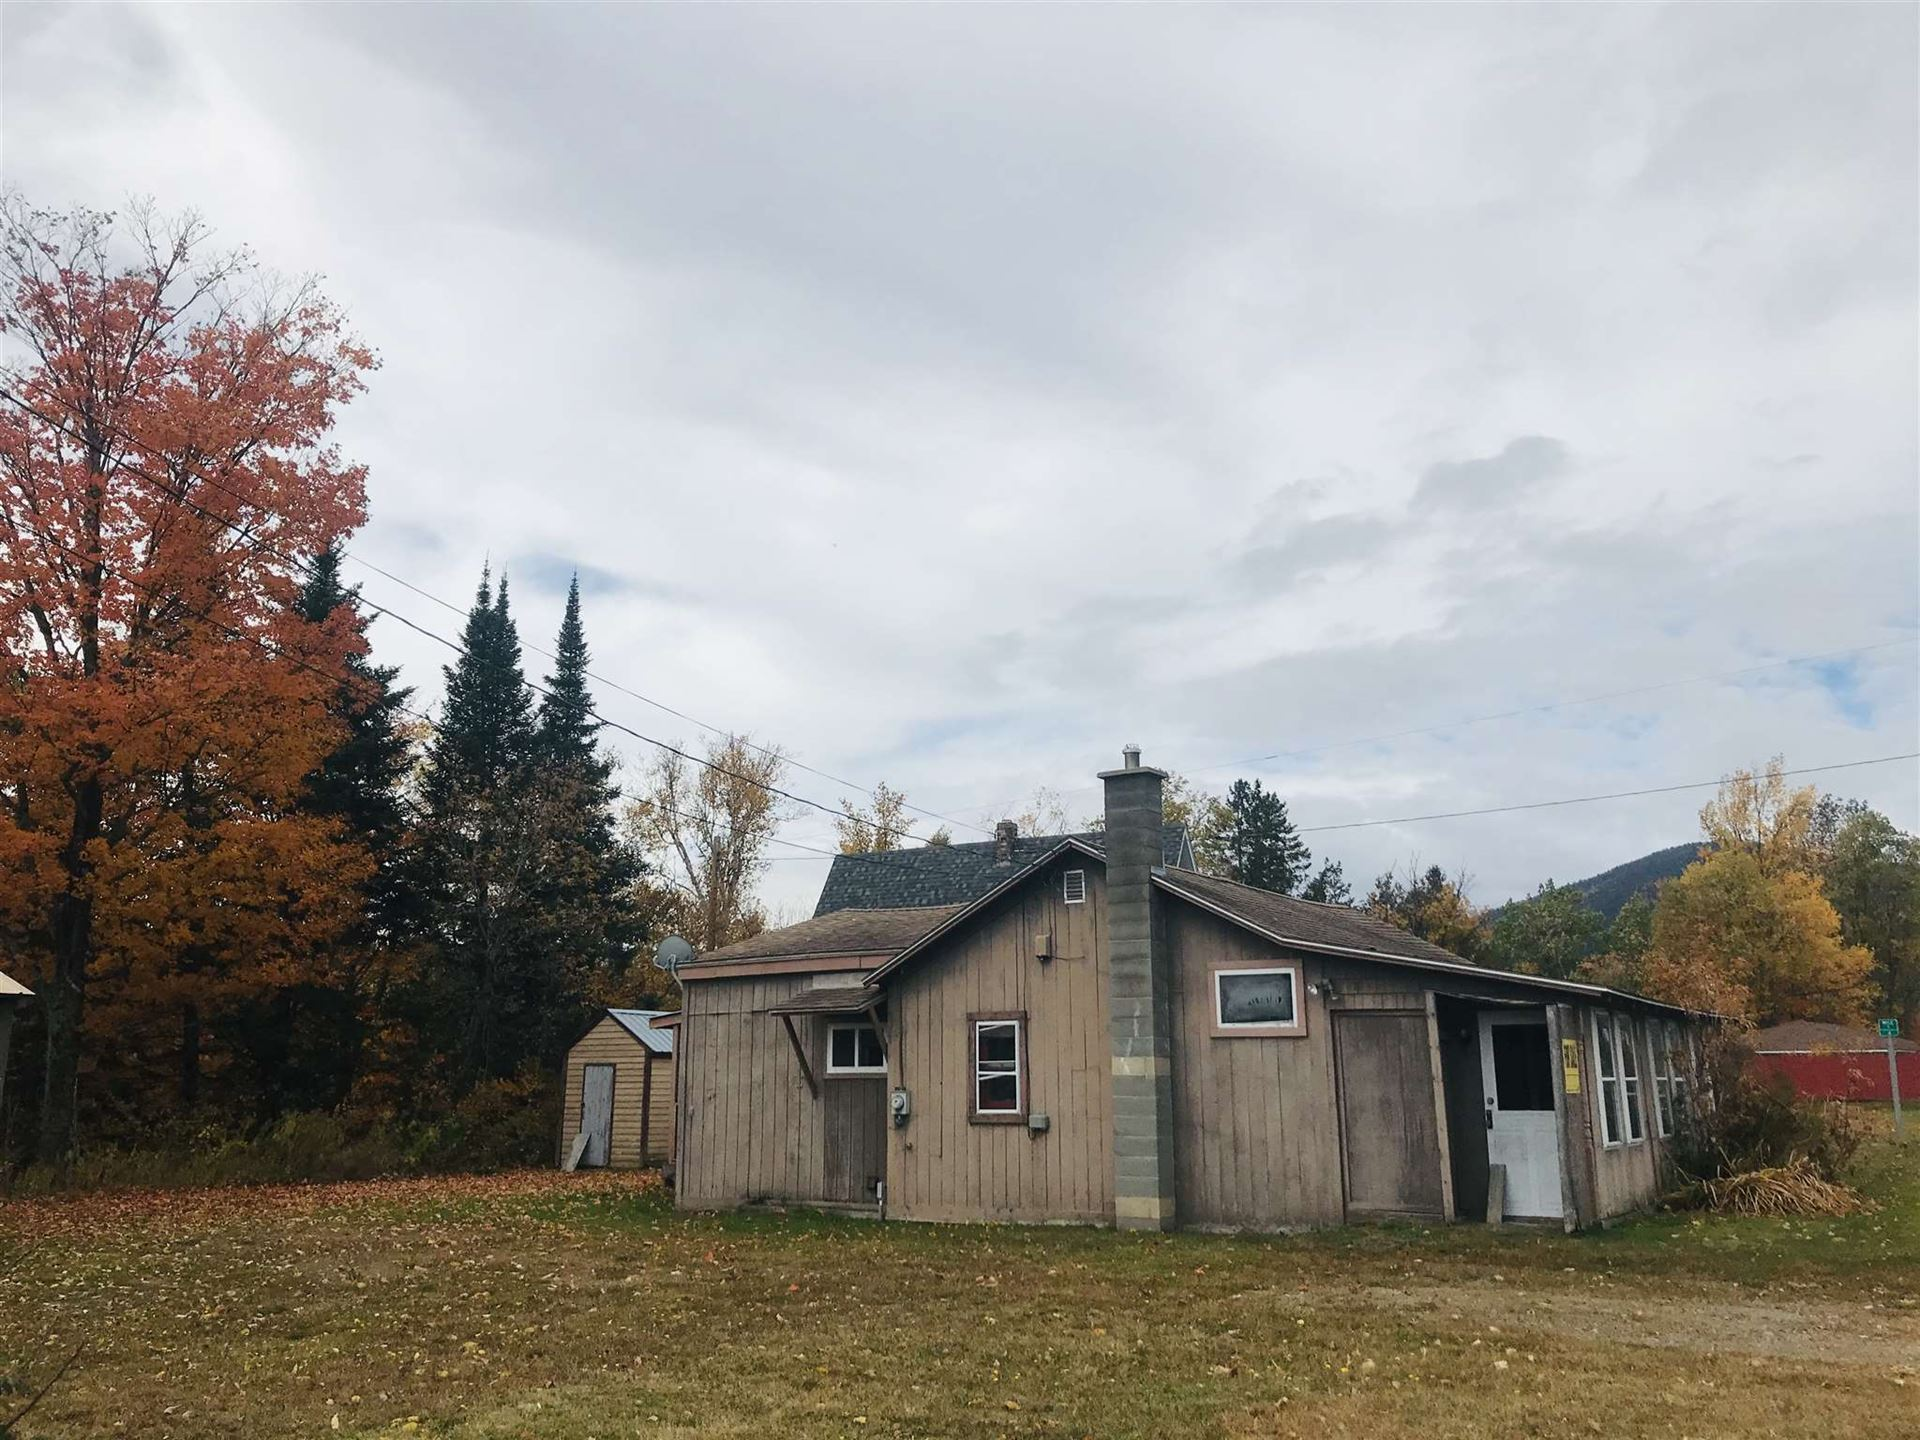 48 Nh Route 26, Colebrook, NH 03576 - MLS#: 4809289